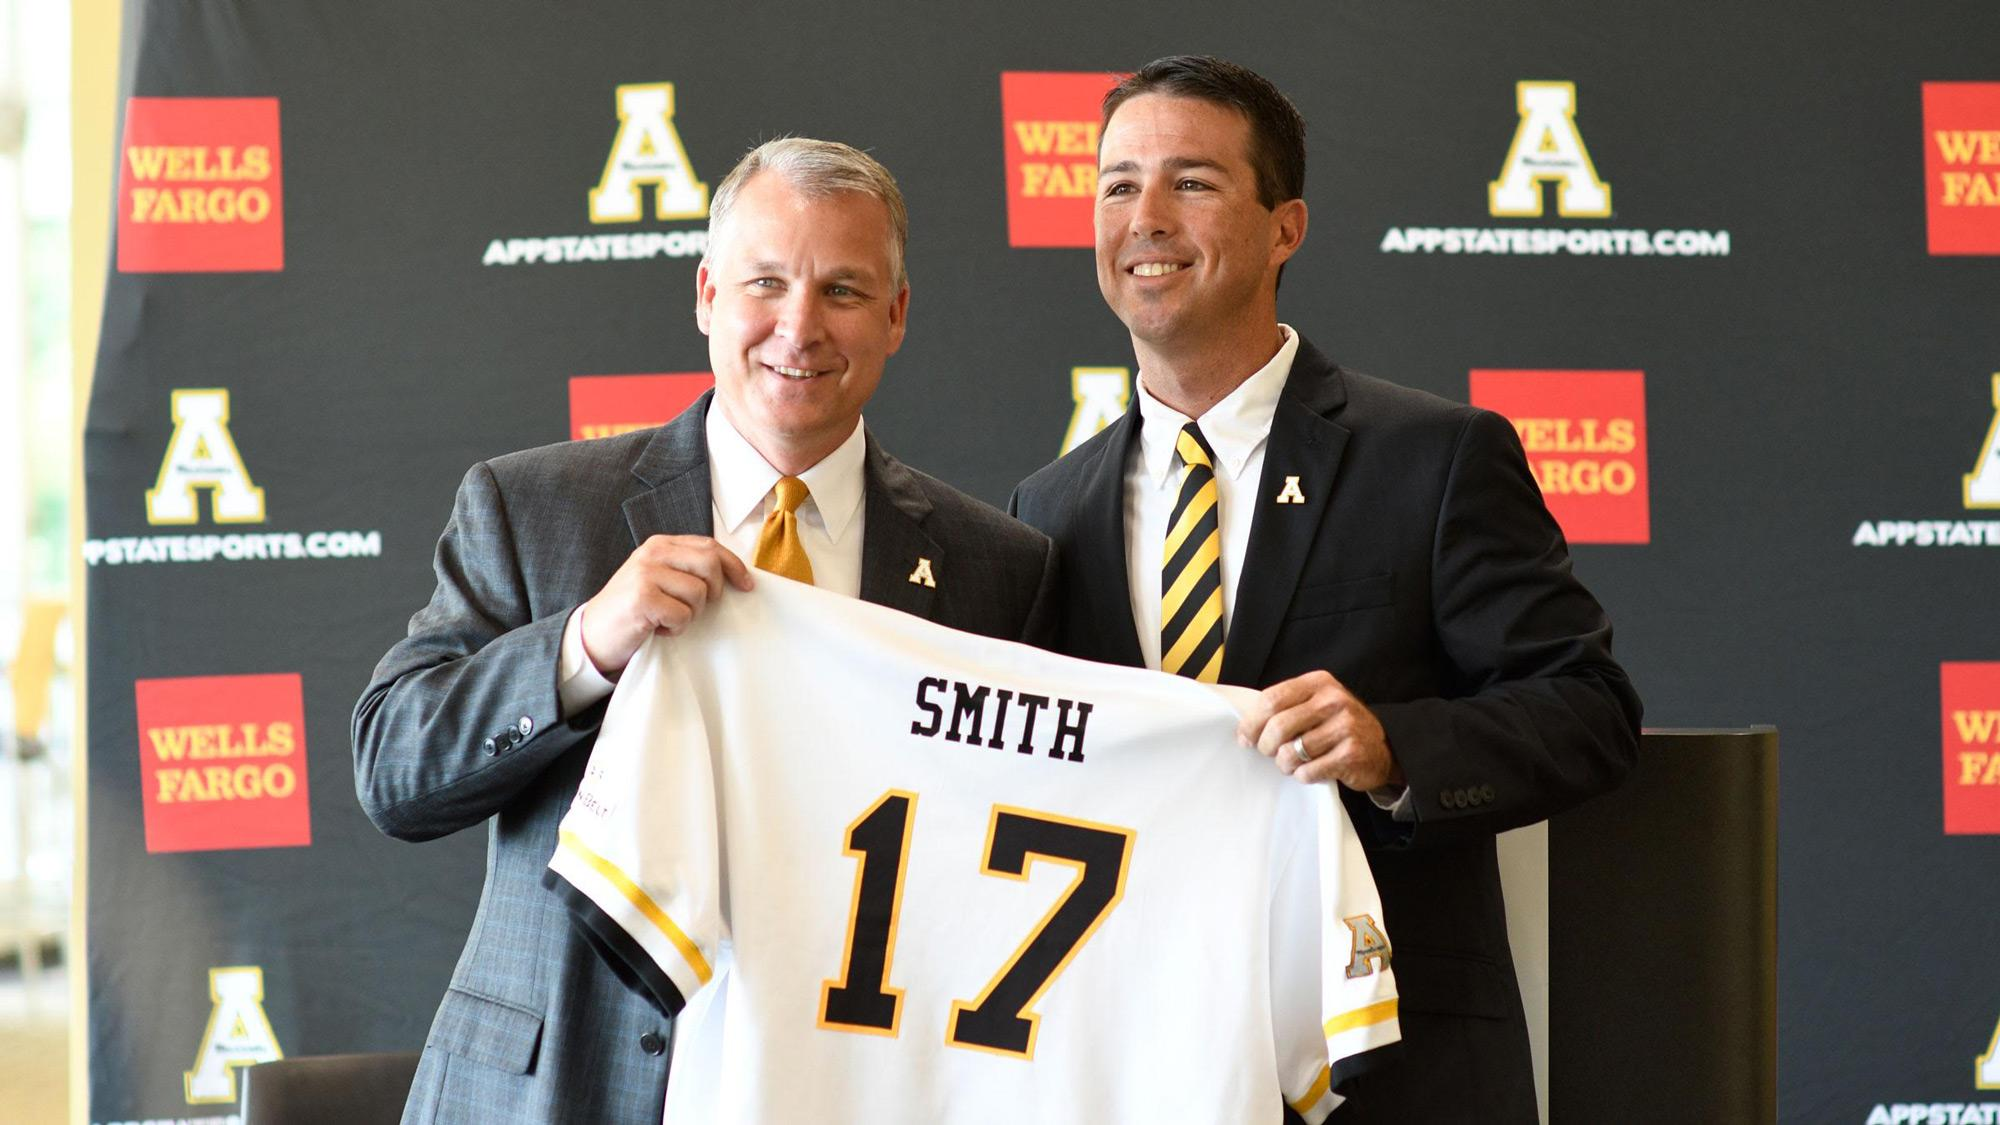 Smith introduced by athletic director Doug Gillin in a press conference on Monday.  Photo by Justin Perry/Appalachian State Athletics